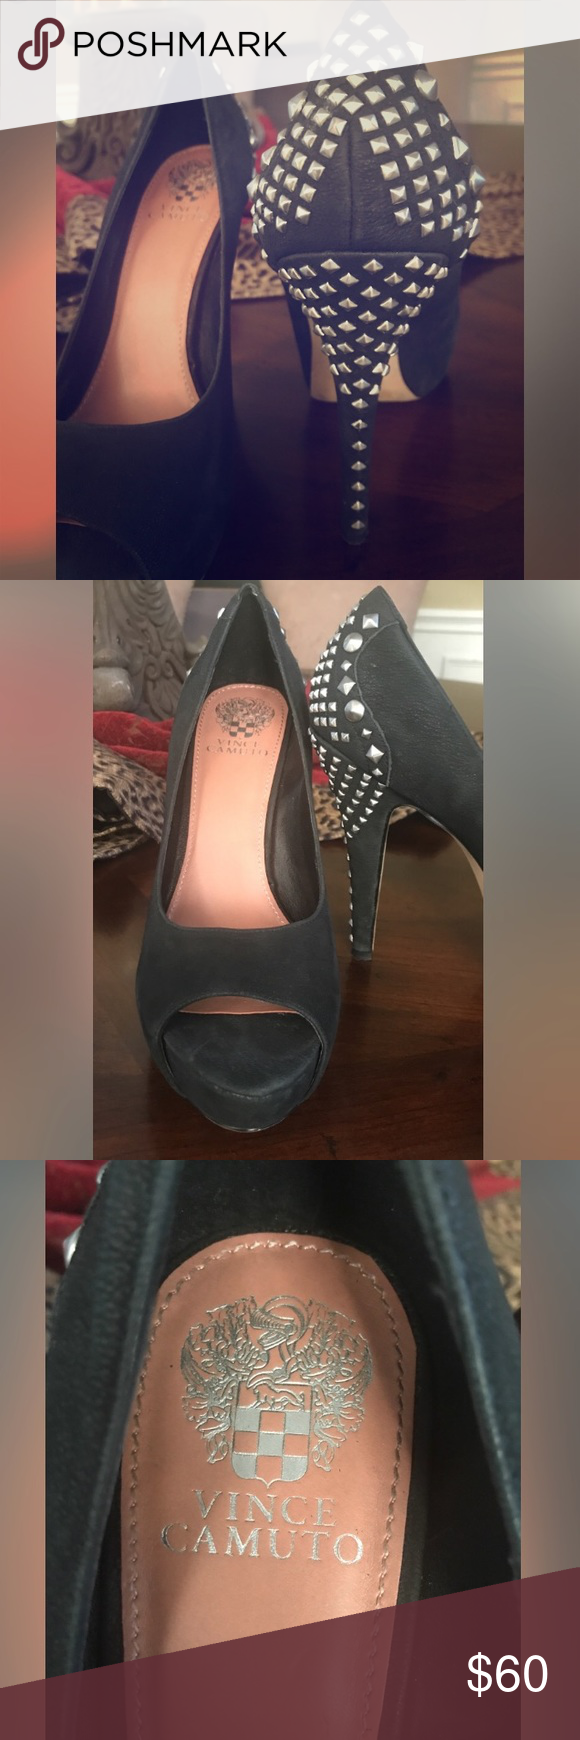 Vince Camuto Black Studded heels Vince Camuto Black Studded heels in excellent condition, box included. Vince Camuto Shoes Heels